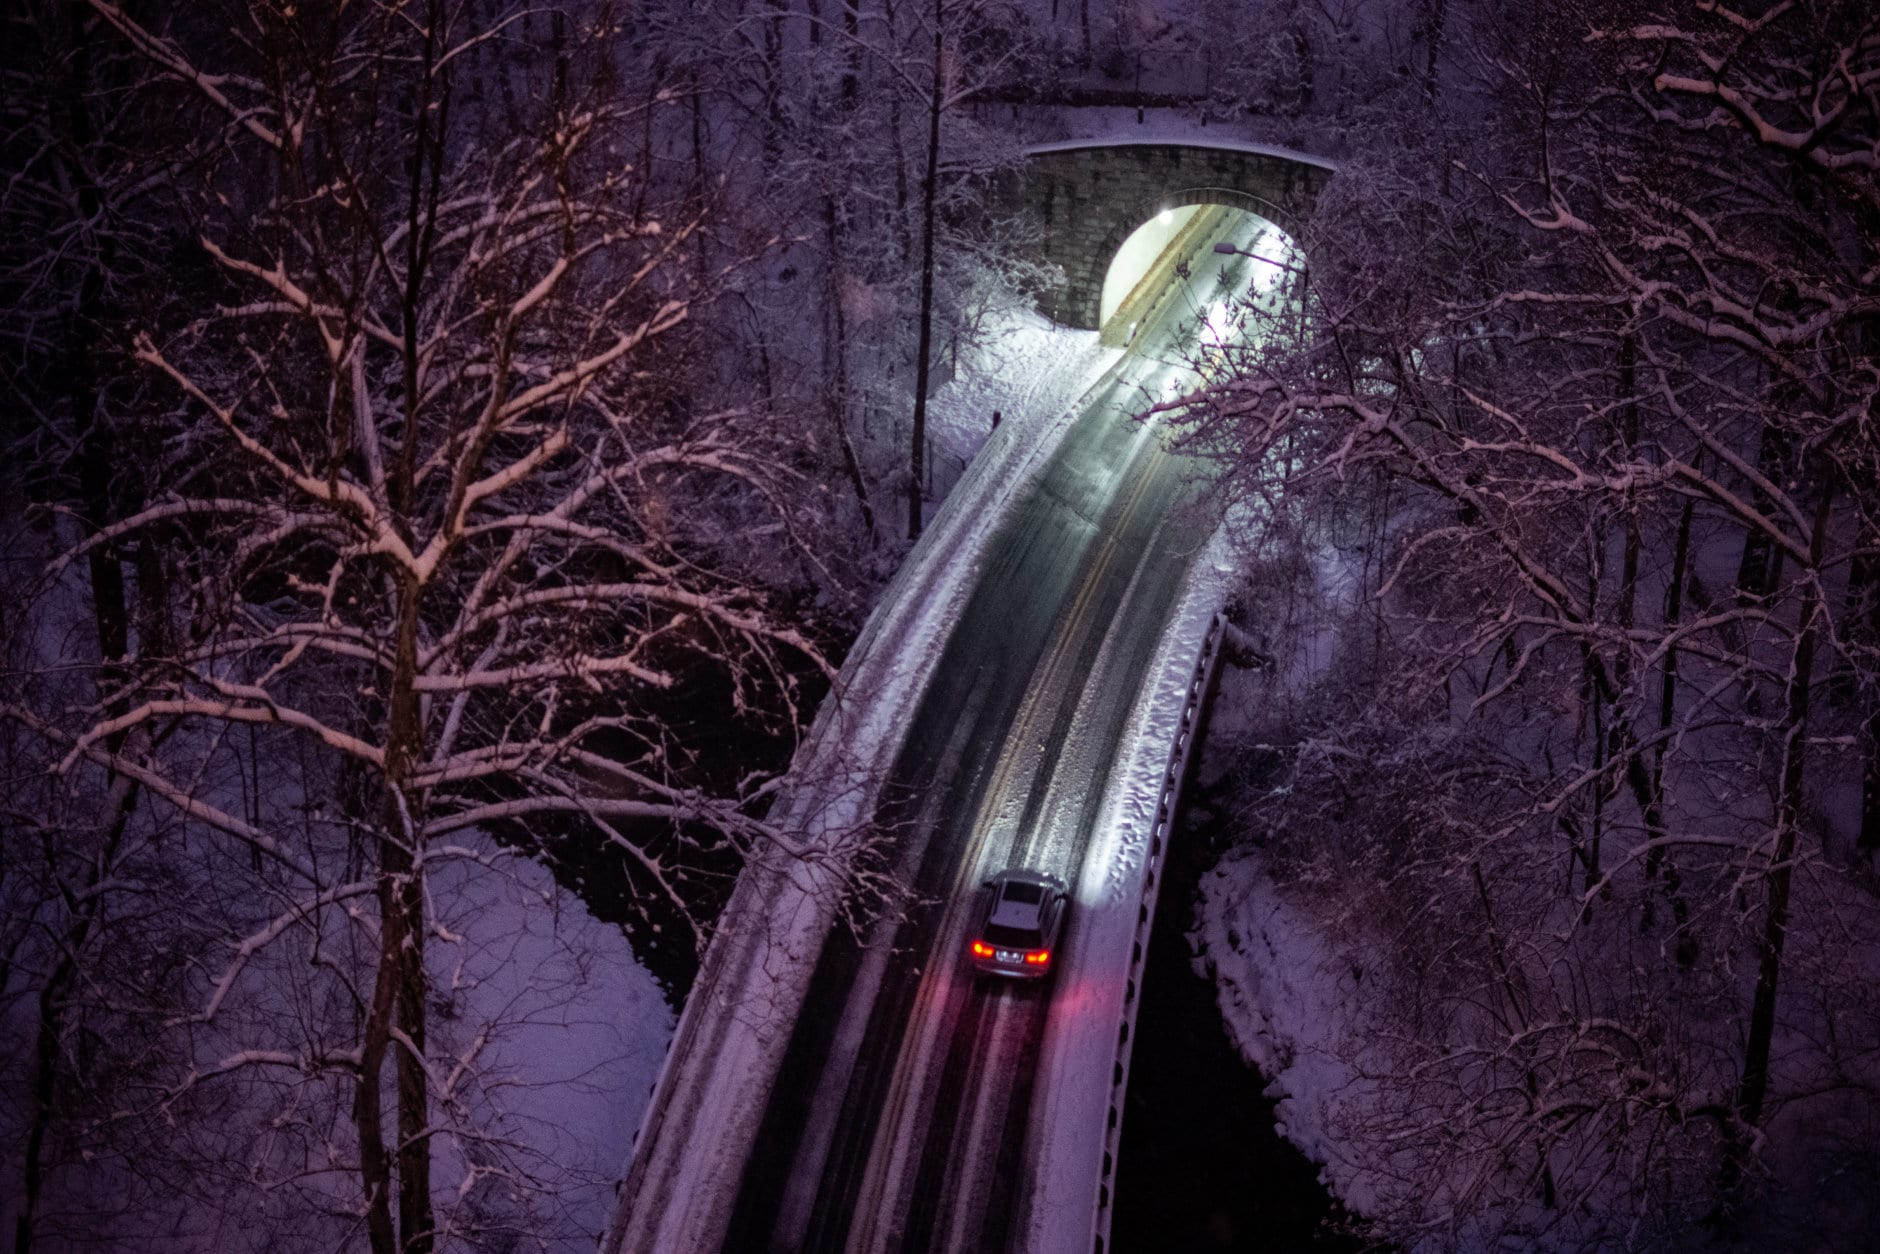 A lone car heads into north on Beach Drive, seen from the Duke Ellington Memorial Bridge between Woodley Park and Adams Morgan on Sunday evening. Roads were passable but still slick, amid a wonderland of blanketed trees in Rock Creek Park. (WTOP/Alejandro Alvarez)